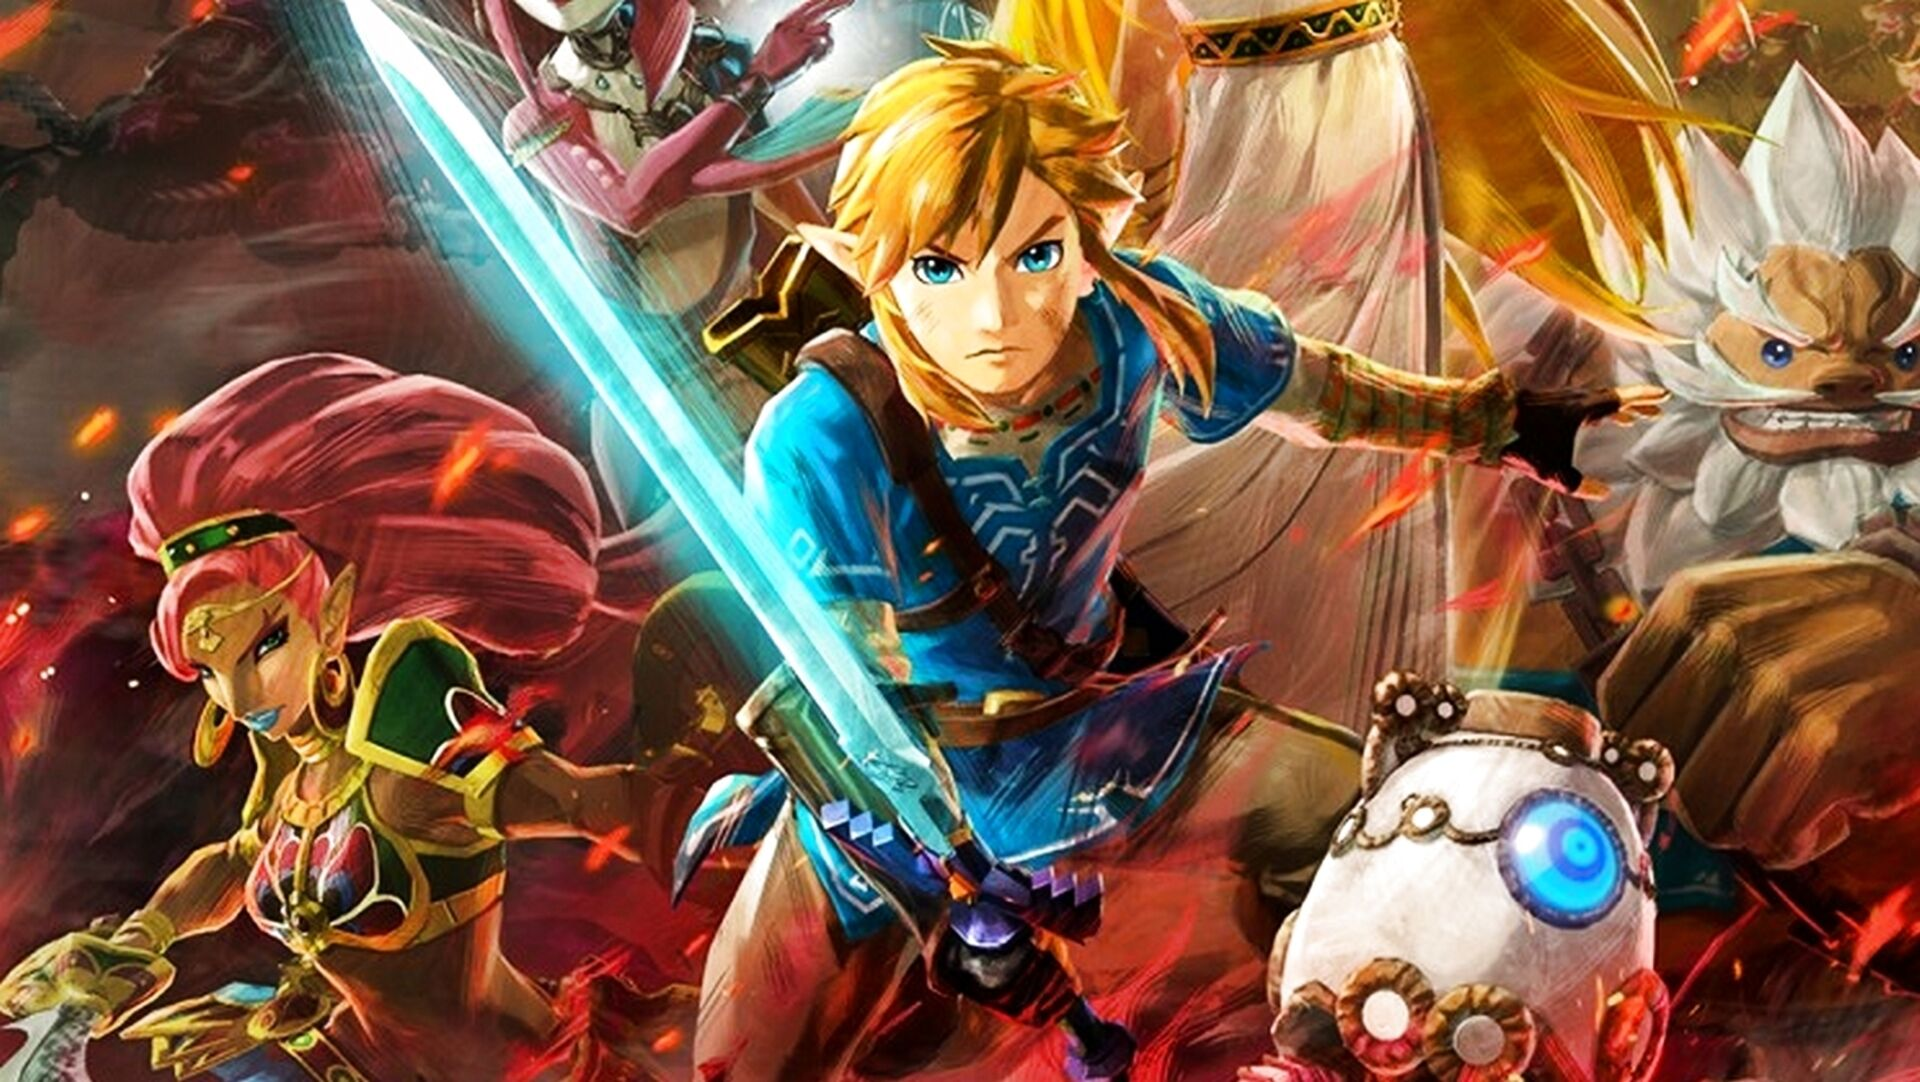 Hyrule Warriors Zeit Der Verheerung Fur Switch Angekundigt 100 Jahre Vor Breath Of The Wild Eurogamer De